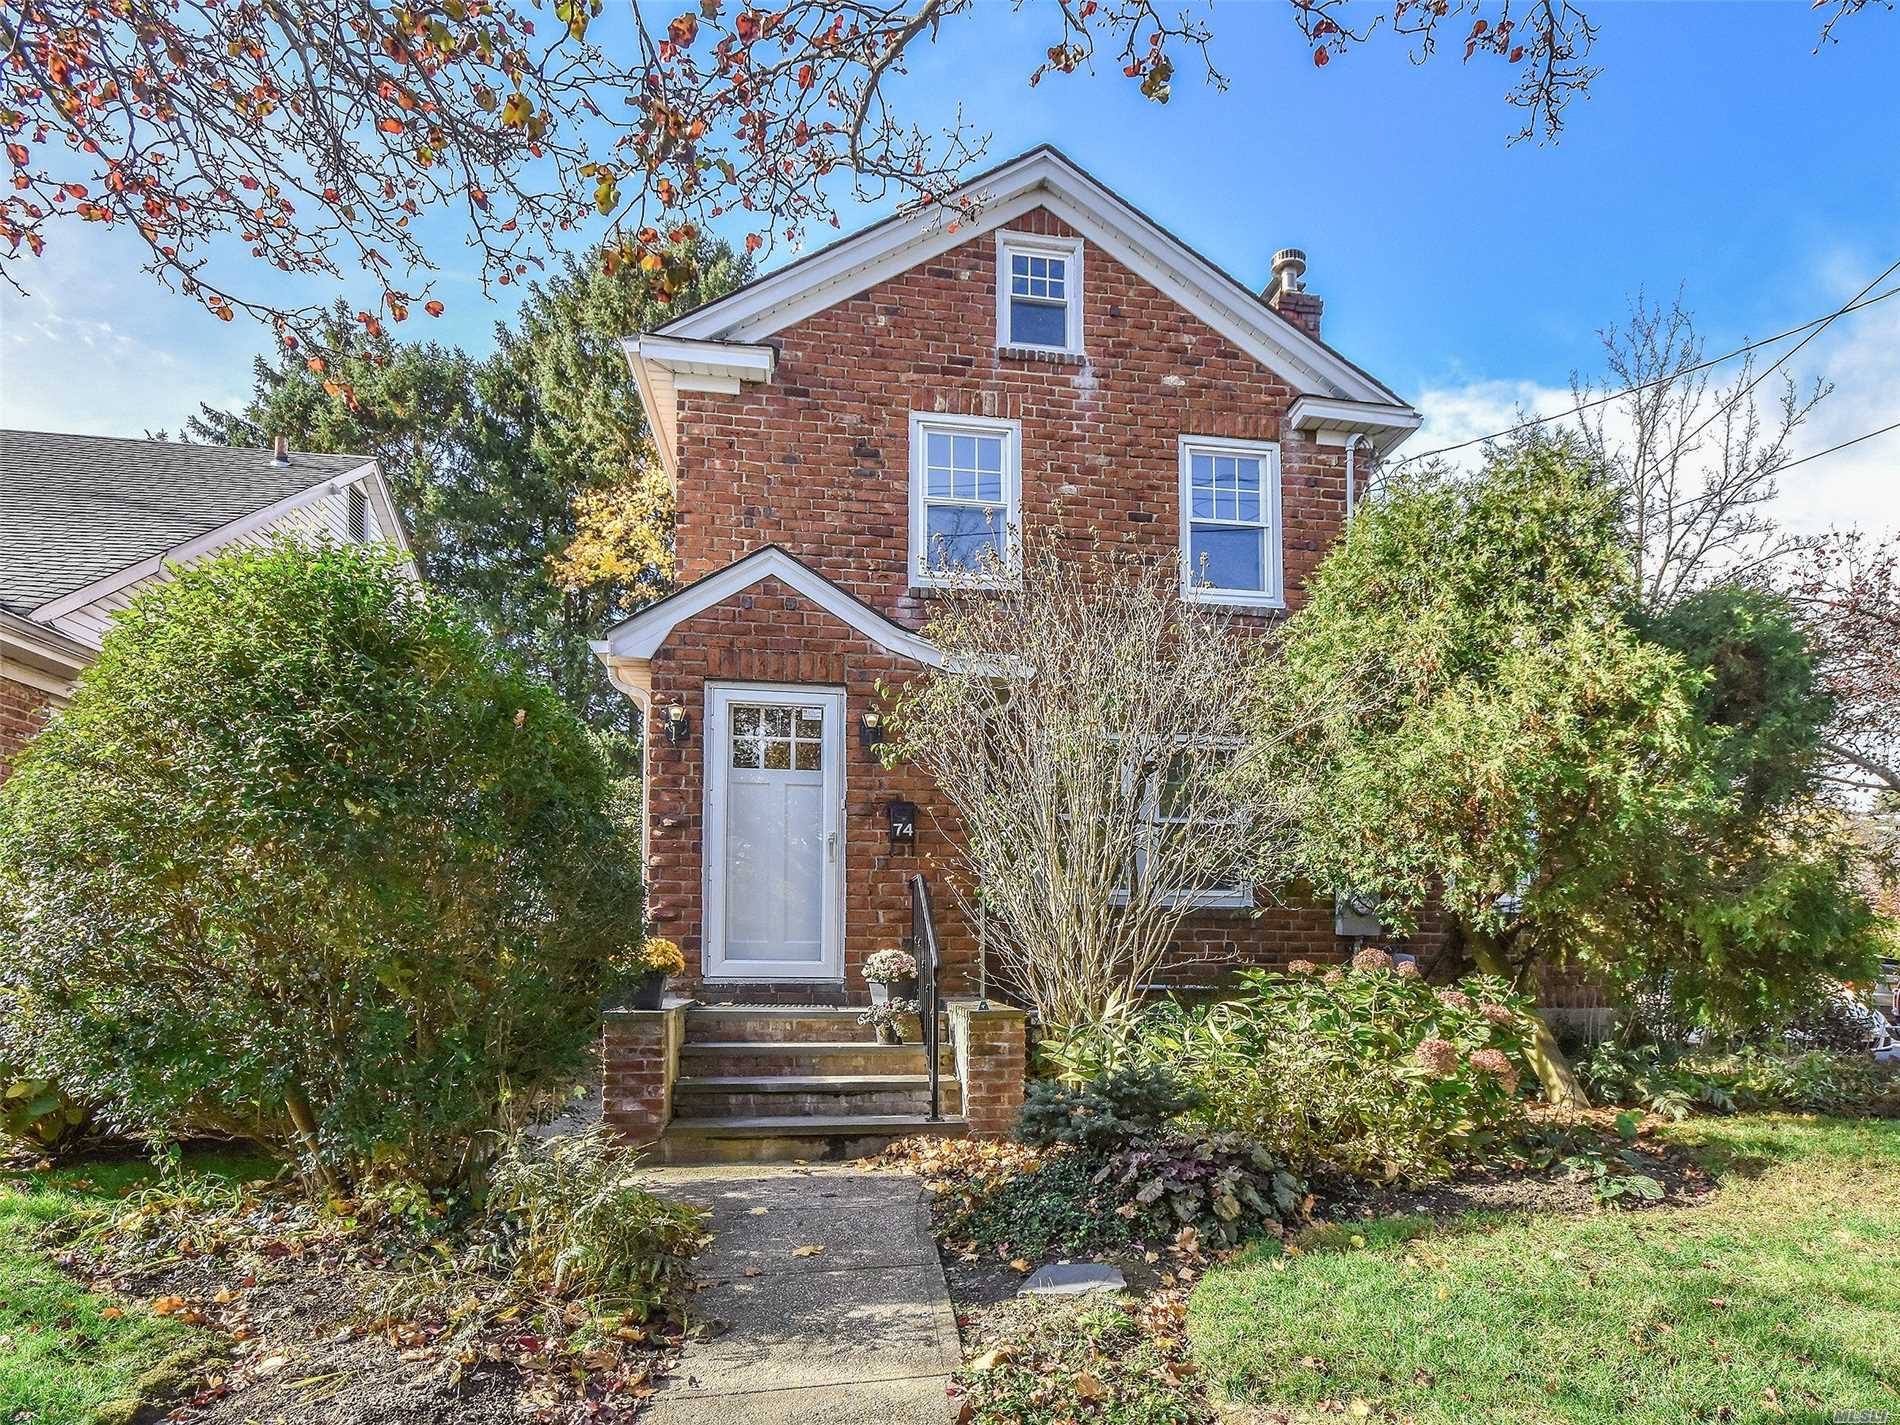 This Charming Brick Colonial In The Heart Of Port Washington Just Minutes To Town. Train, Restaurants And Shopping Is An Opportunity Not To Be Missed. Enter Through Front Foyer With Pretty French Door To Living Room W/Fpl Which Opens To Dining Room. Sunroom Off Lr. Adjacent To Kitchen There Is Sunny Breakfast Room. 3 Bedrooms And Bath Upstairs. Full Unfinished Basement With Half Bath And Lots Of Possibilities. Hardwood Floors, High Eff. Furnace. A Warm And Welcoming Very Bright Home.